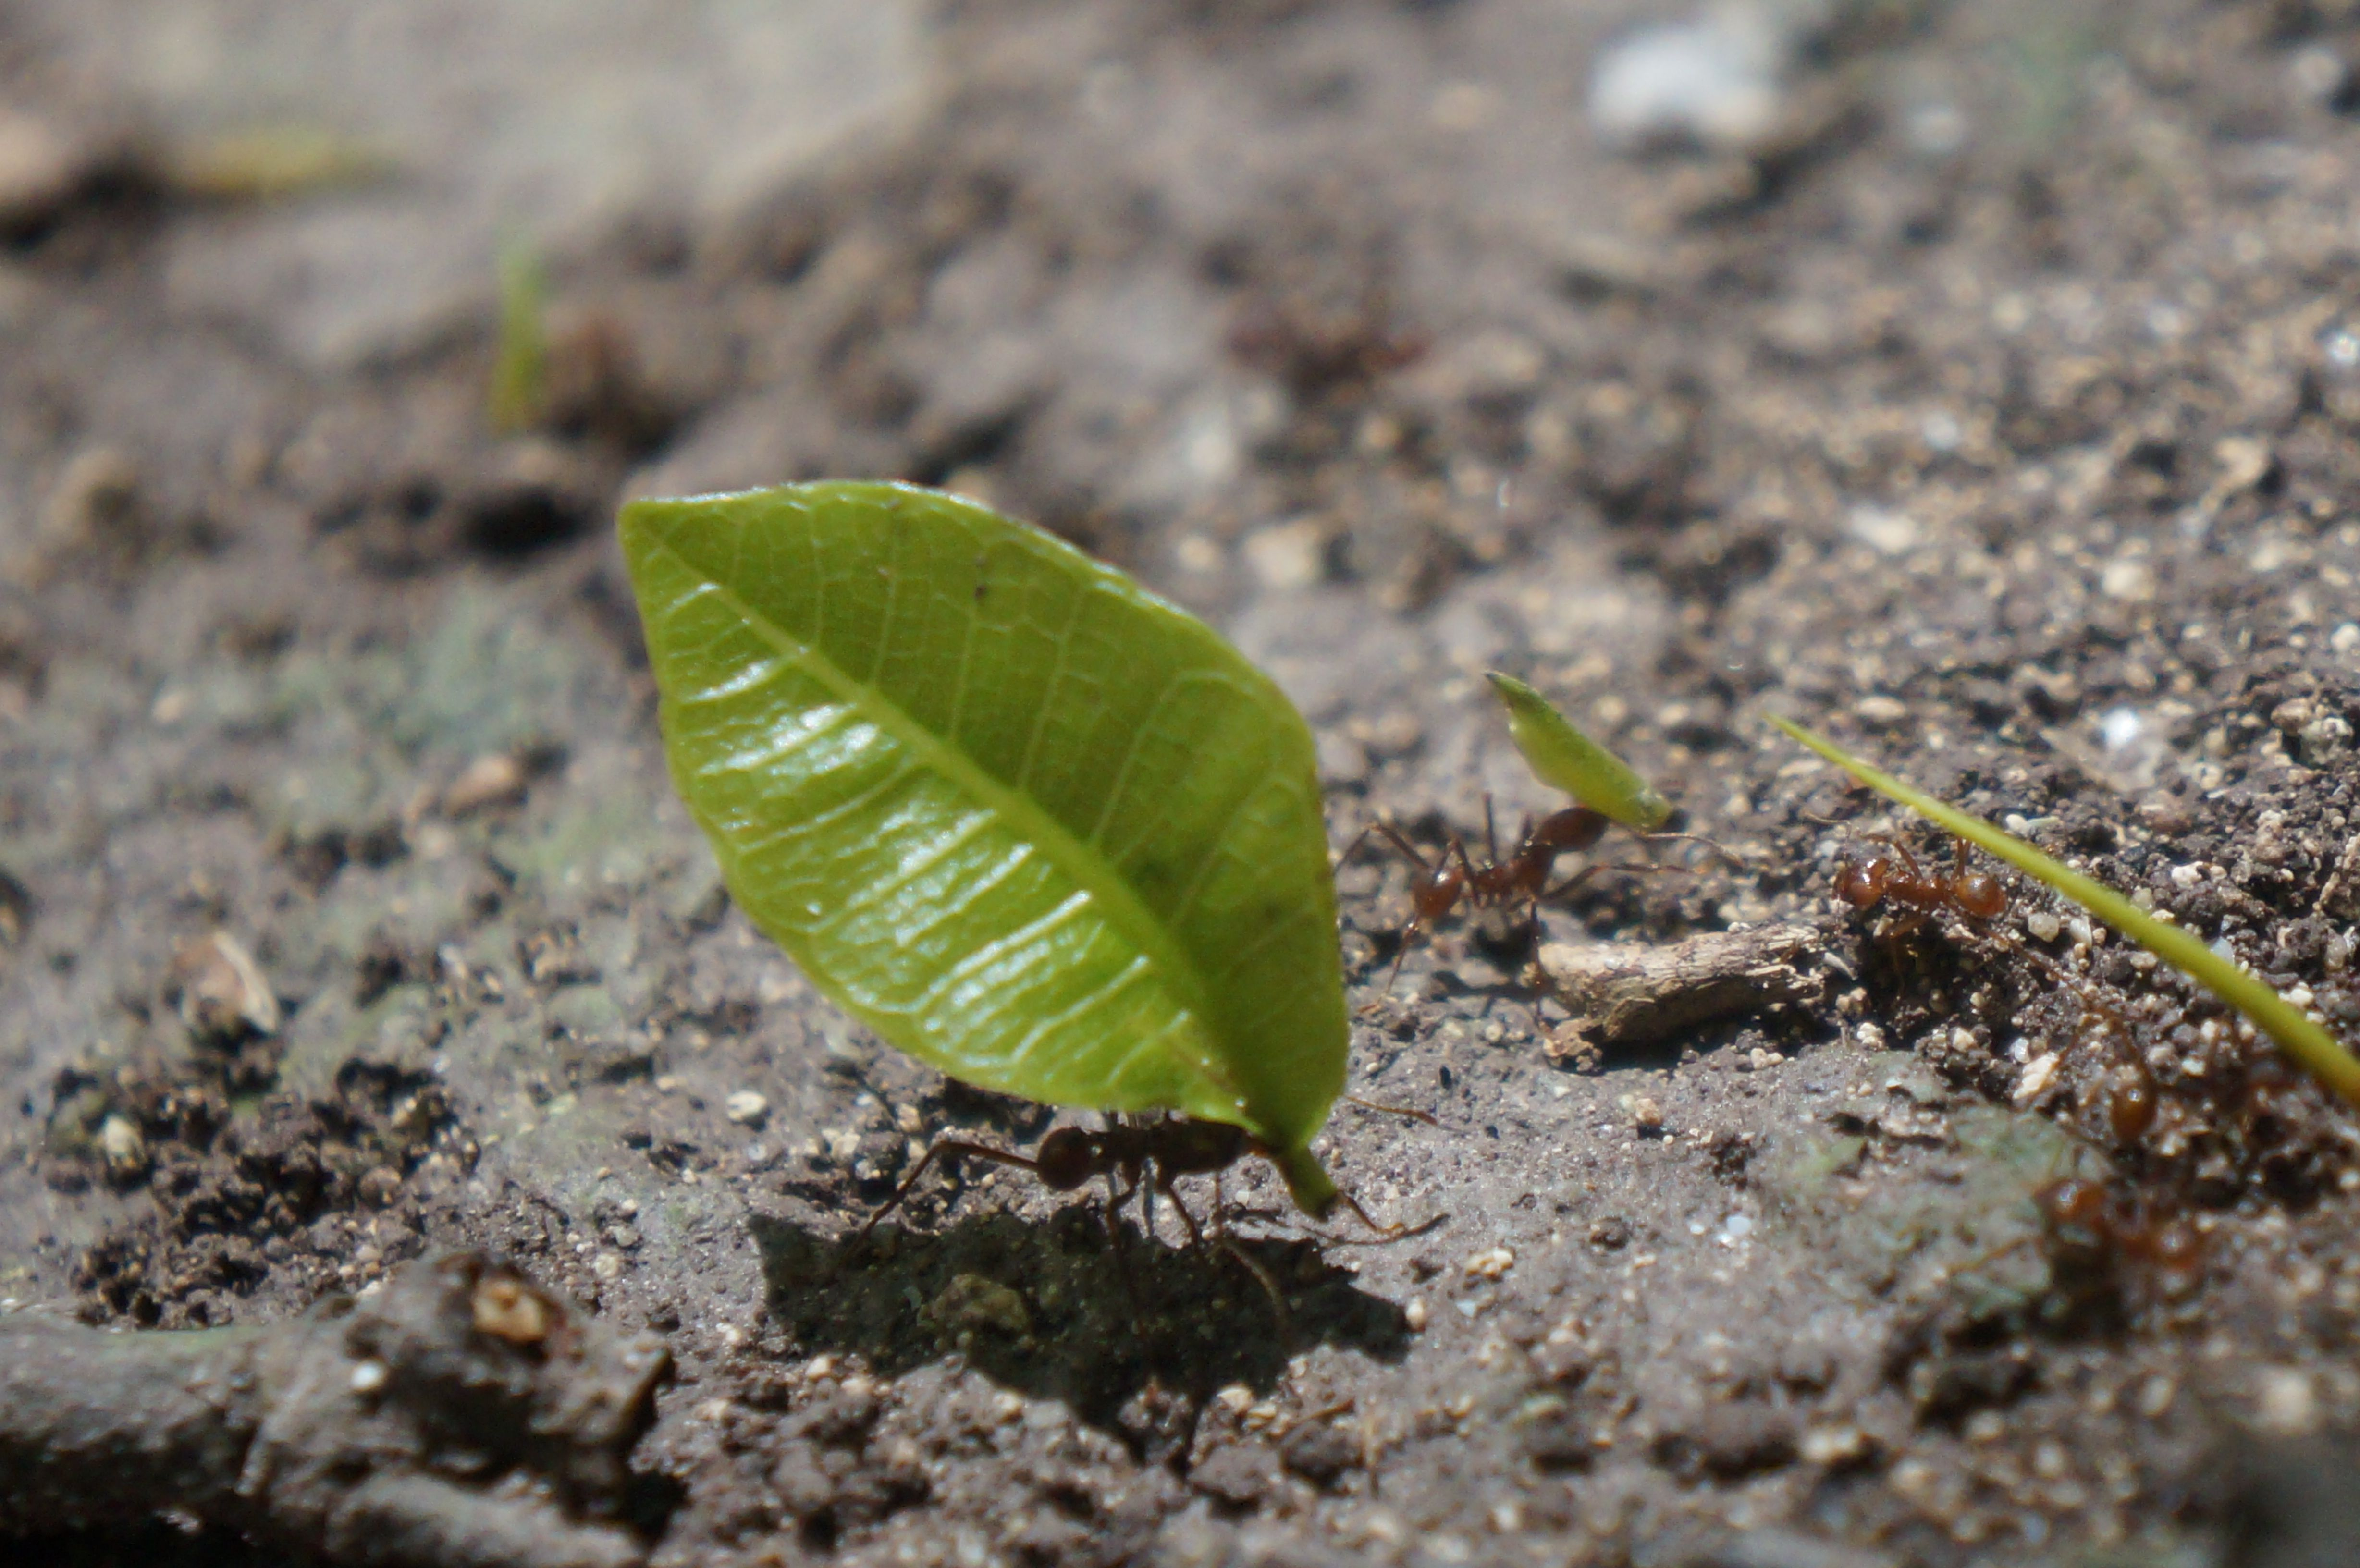 Some Leafcutter ants in the Proyecto El Zotz, Guatemala